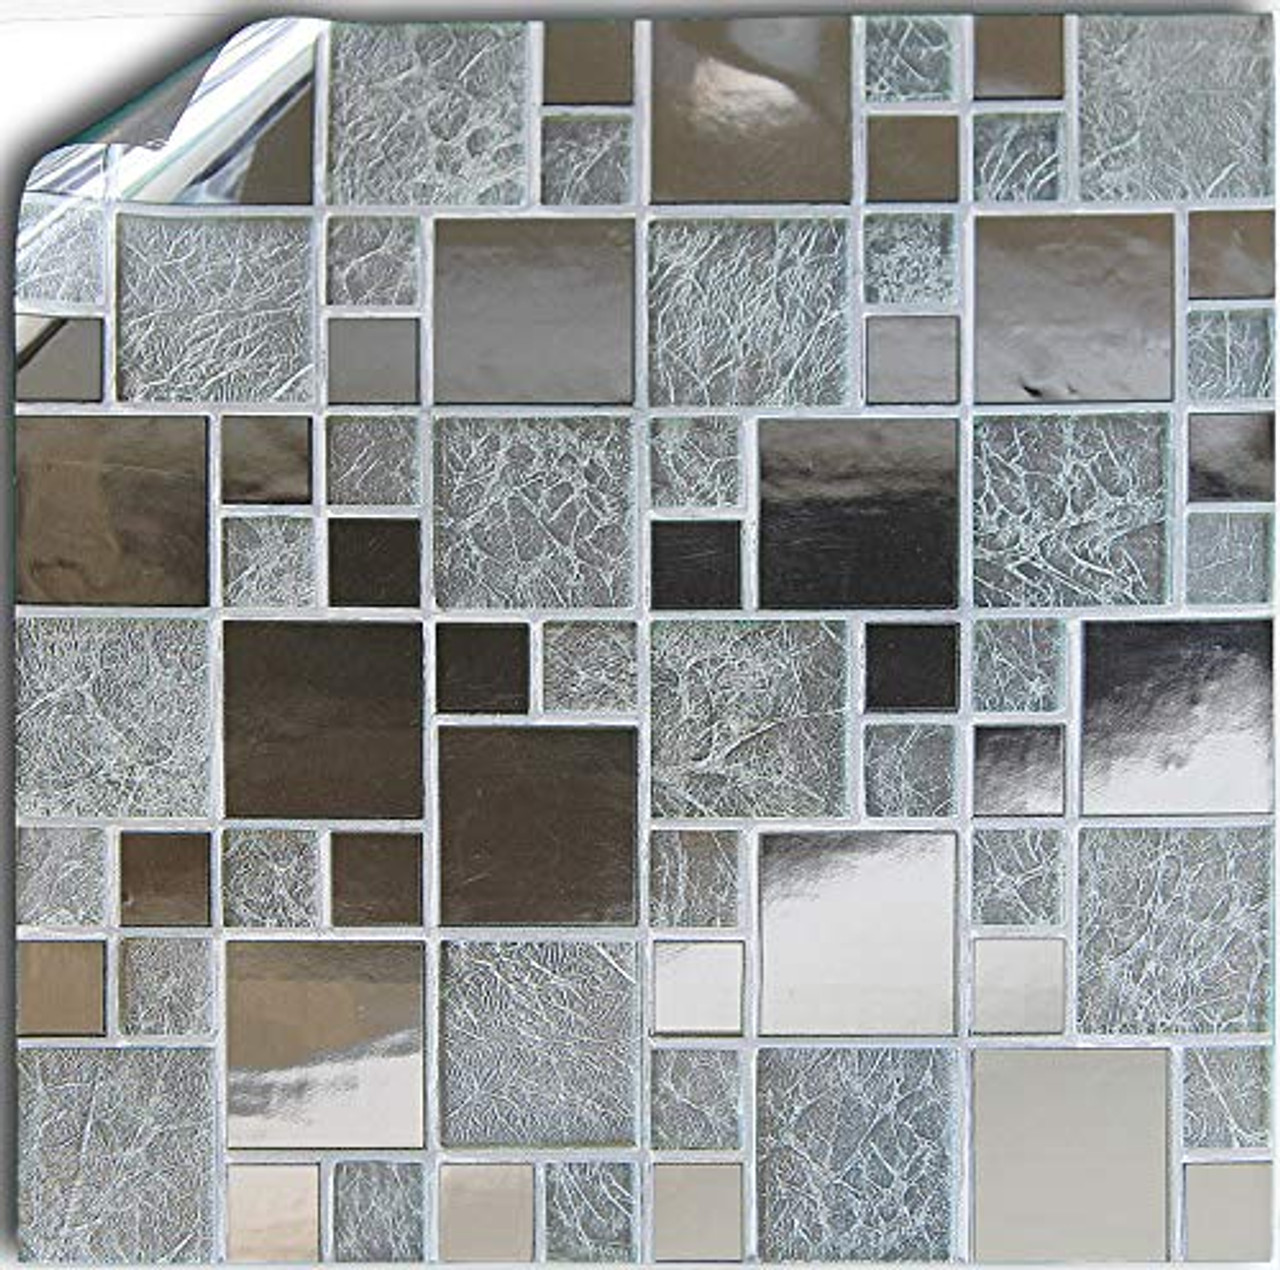 24 Silver Chrome Kitchen Bathroom Tile Stickers For 15cm 6 Inches Square Tiles